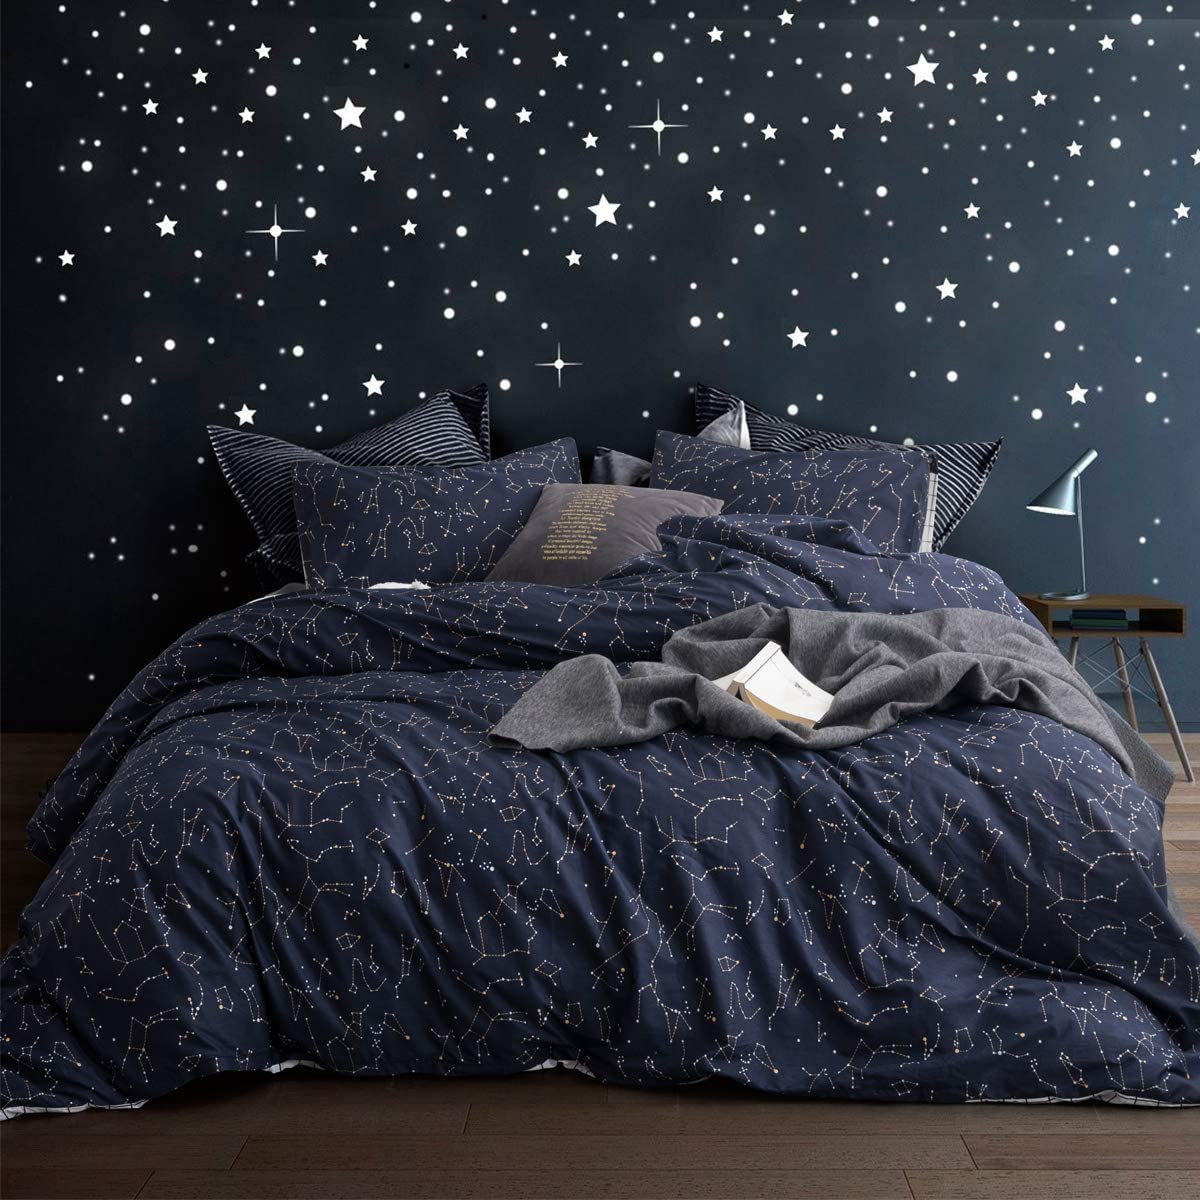 ECOCOTT Duvet Cover Queen, 100% Natural Cotton 1 Duvet Cover +2 Pillowcases Bedding Set,Navy and Cosmic Constellation Reversible Printed Pattern Soft Cozy Breathable and Durable Duvet Cover Set